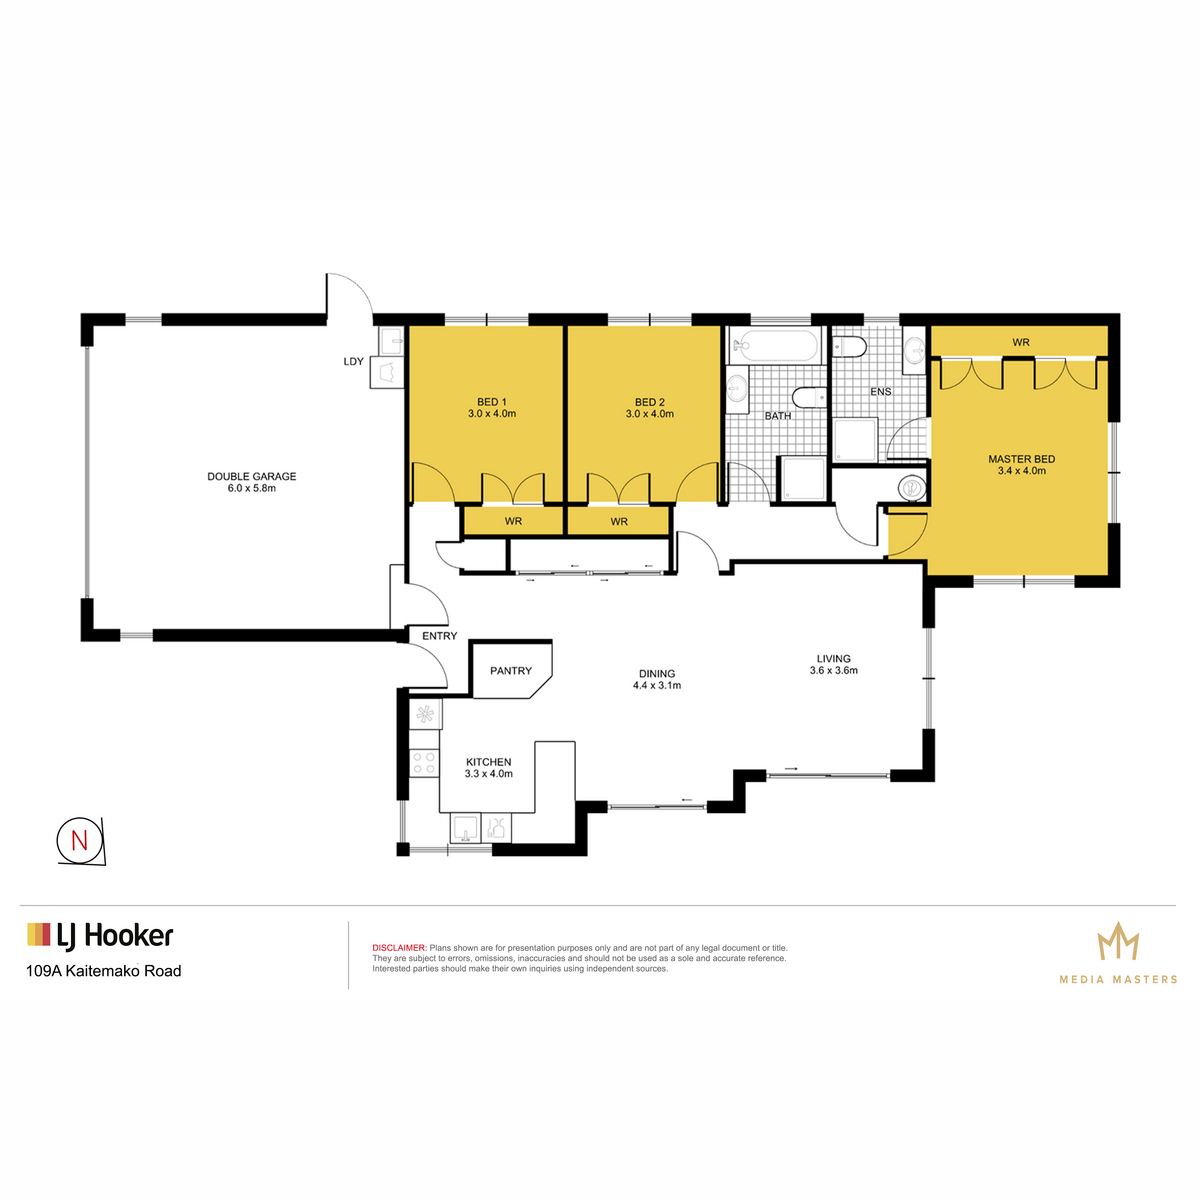 109A Kaitemako Road Welcome Bayproperty floorplan carousel image